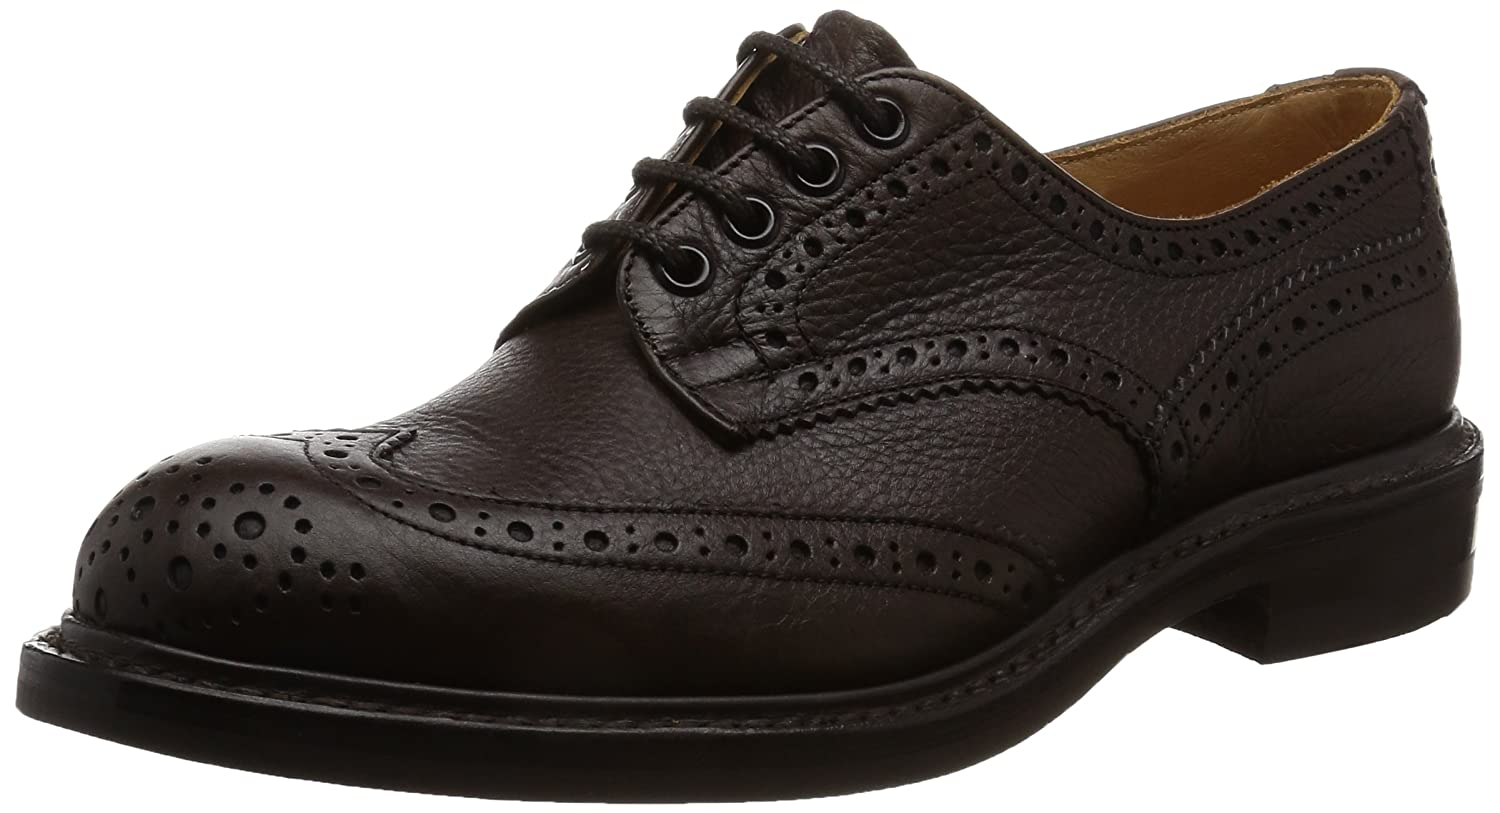 [トリッカーズ] Tricker's Full Brogue Derby Shoe - Olivvia Calf/Dainite Sole Keswick M7292-20 B01N7P2UJO  ダークブラウン 25.5 cm